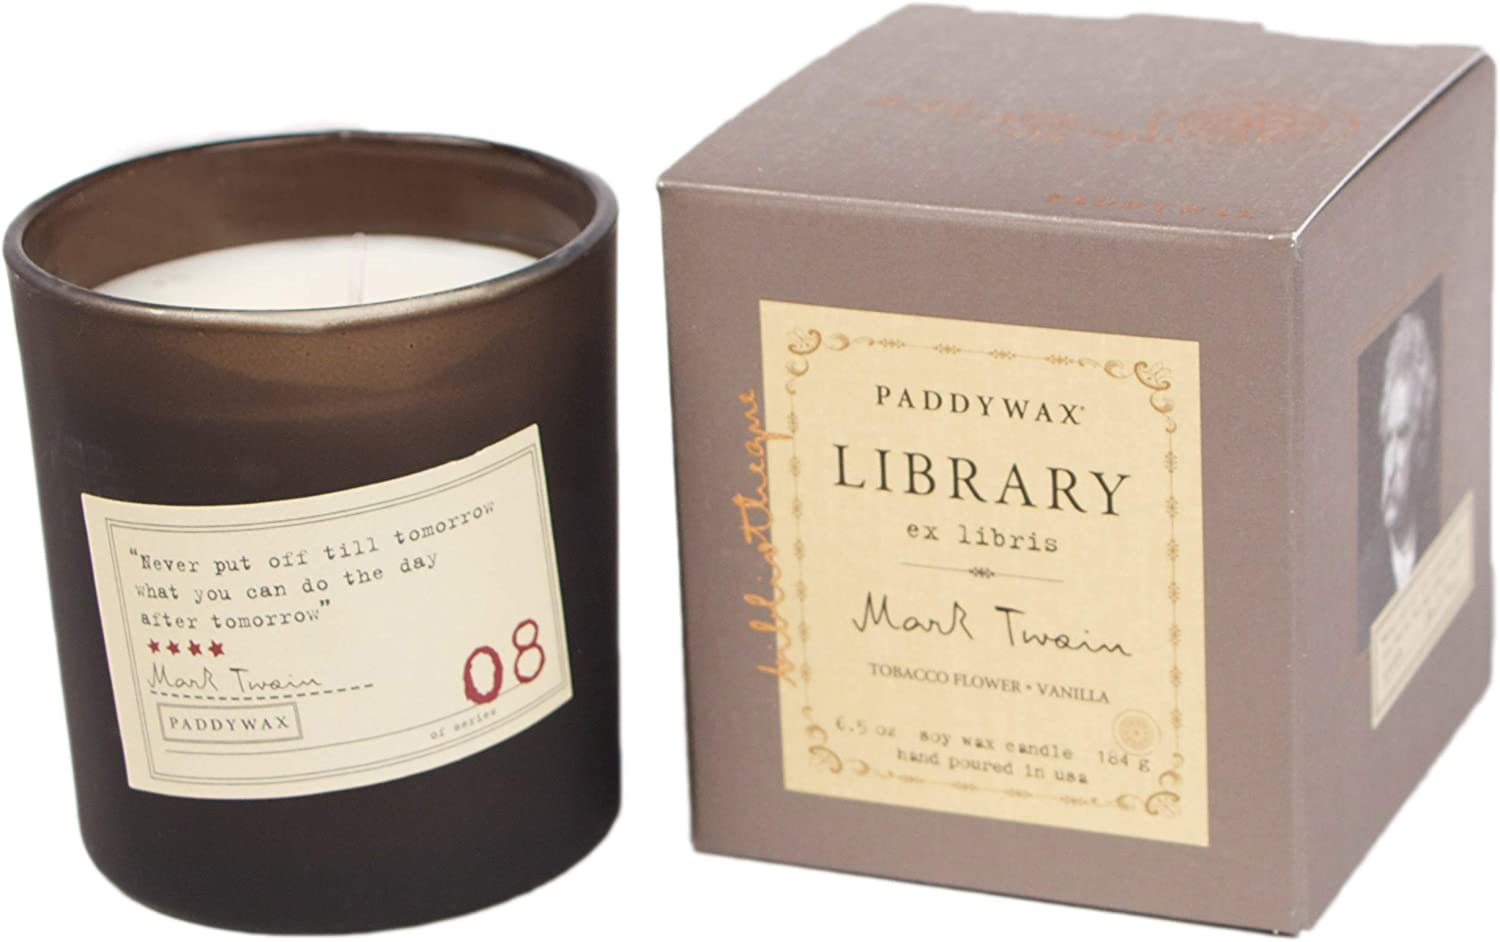 Paddywax Candles GL08Z Paddywax Library Collection Mark Twain Scented Soy Wax Candle, 6.5-Ounce, Tobacco Flowers & Vanilla